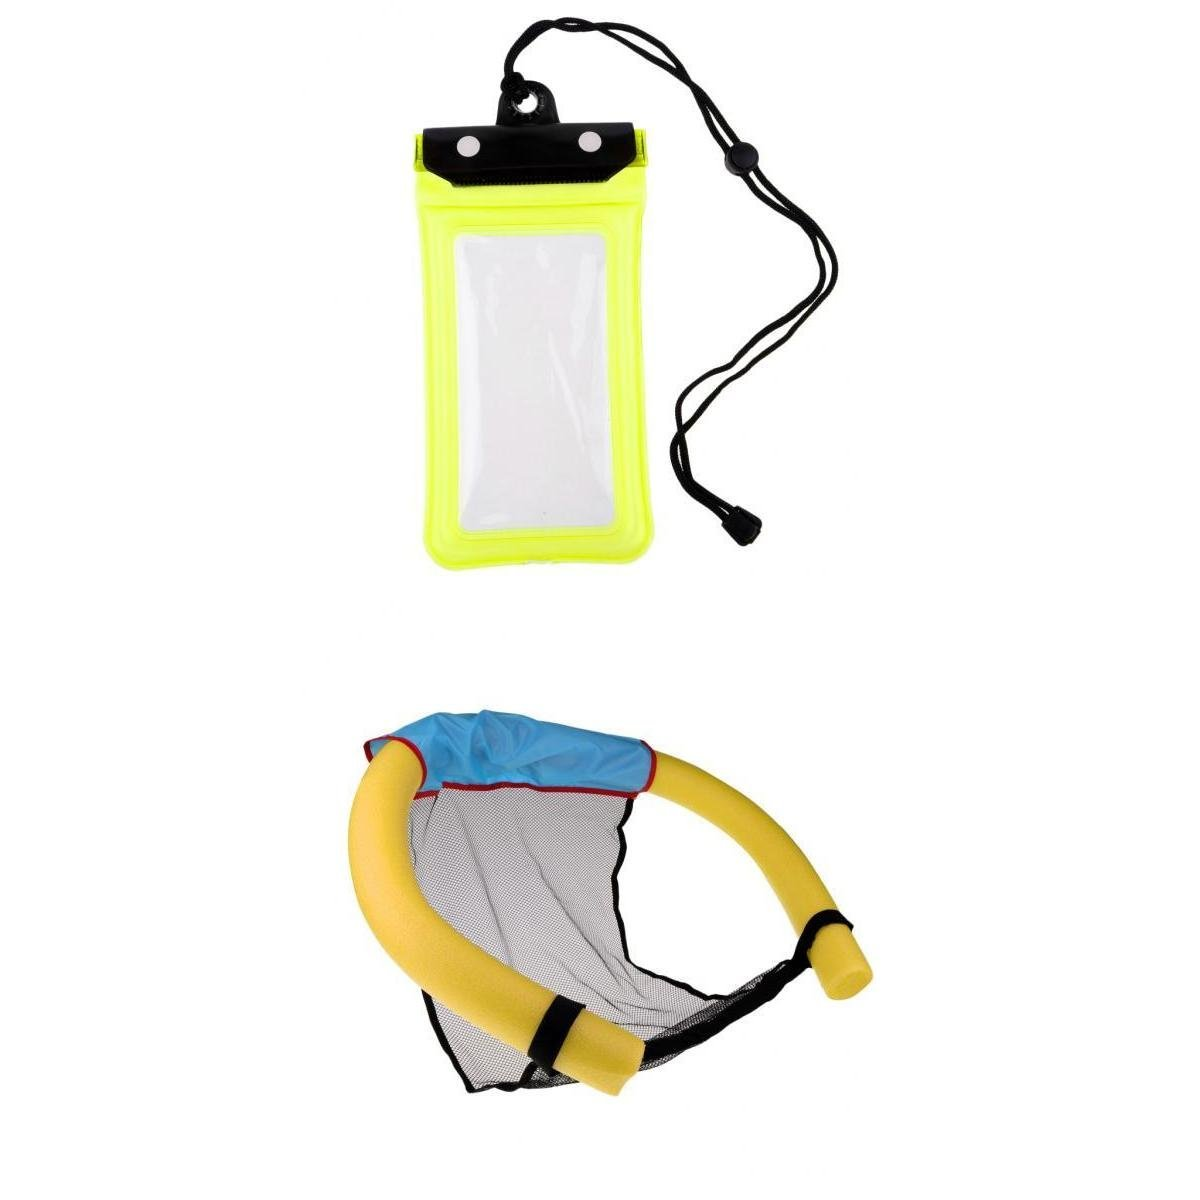 MagiDeal Universal Waterproof Phone Case Anti-Water Pouch Dry Bag Cover Pouch Holder with Swimming Pool Floating Chair